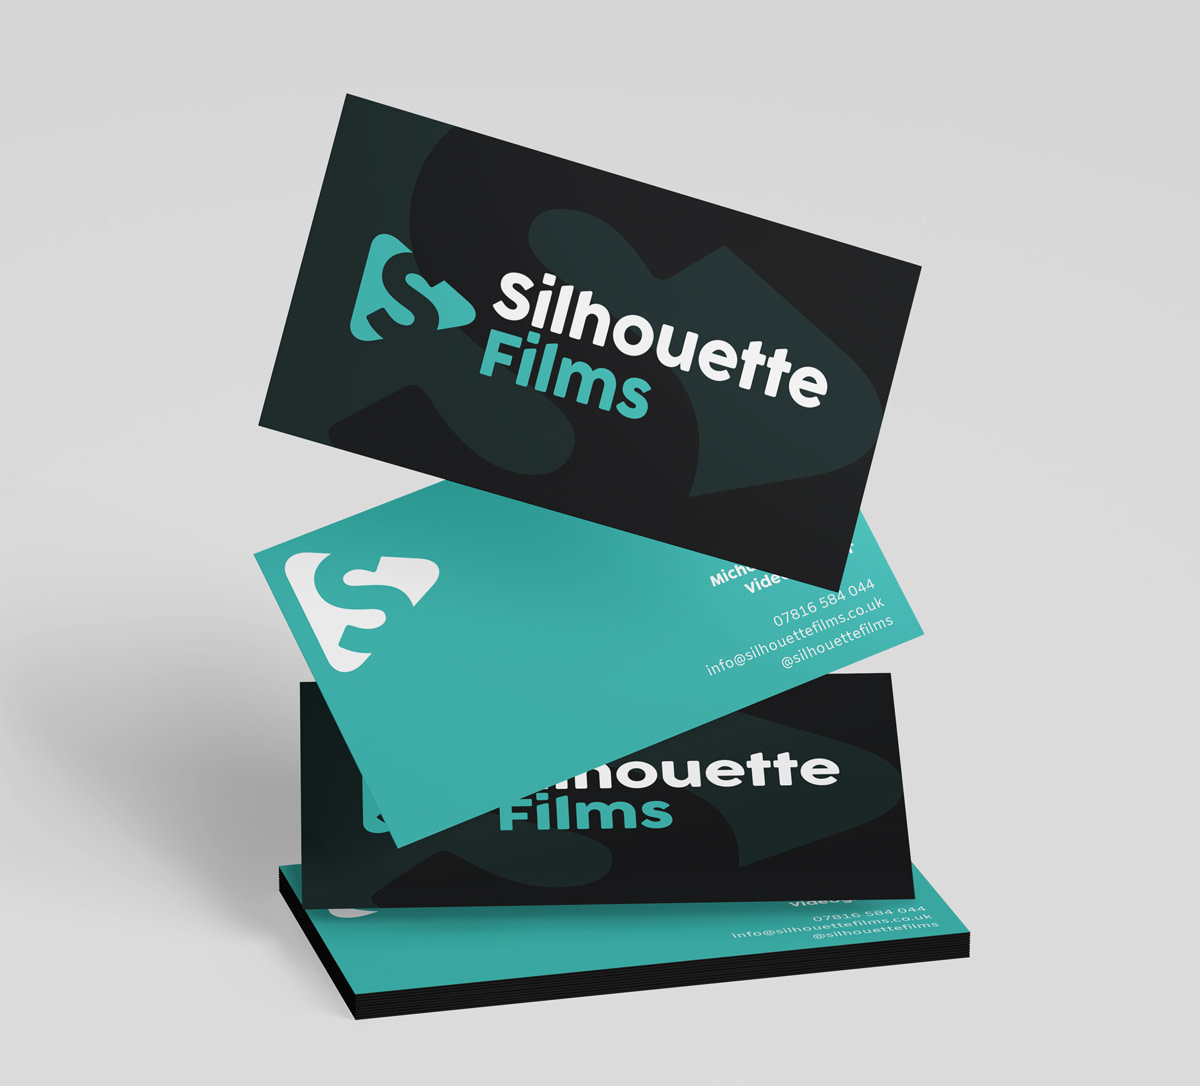 silhouette films Business Card Mockup